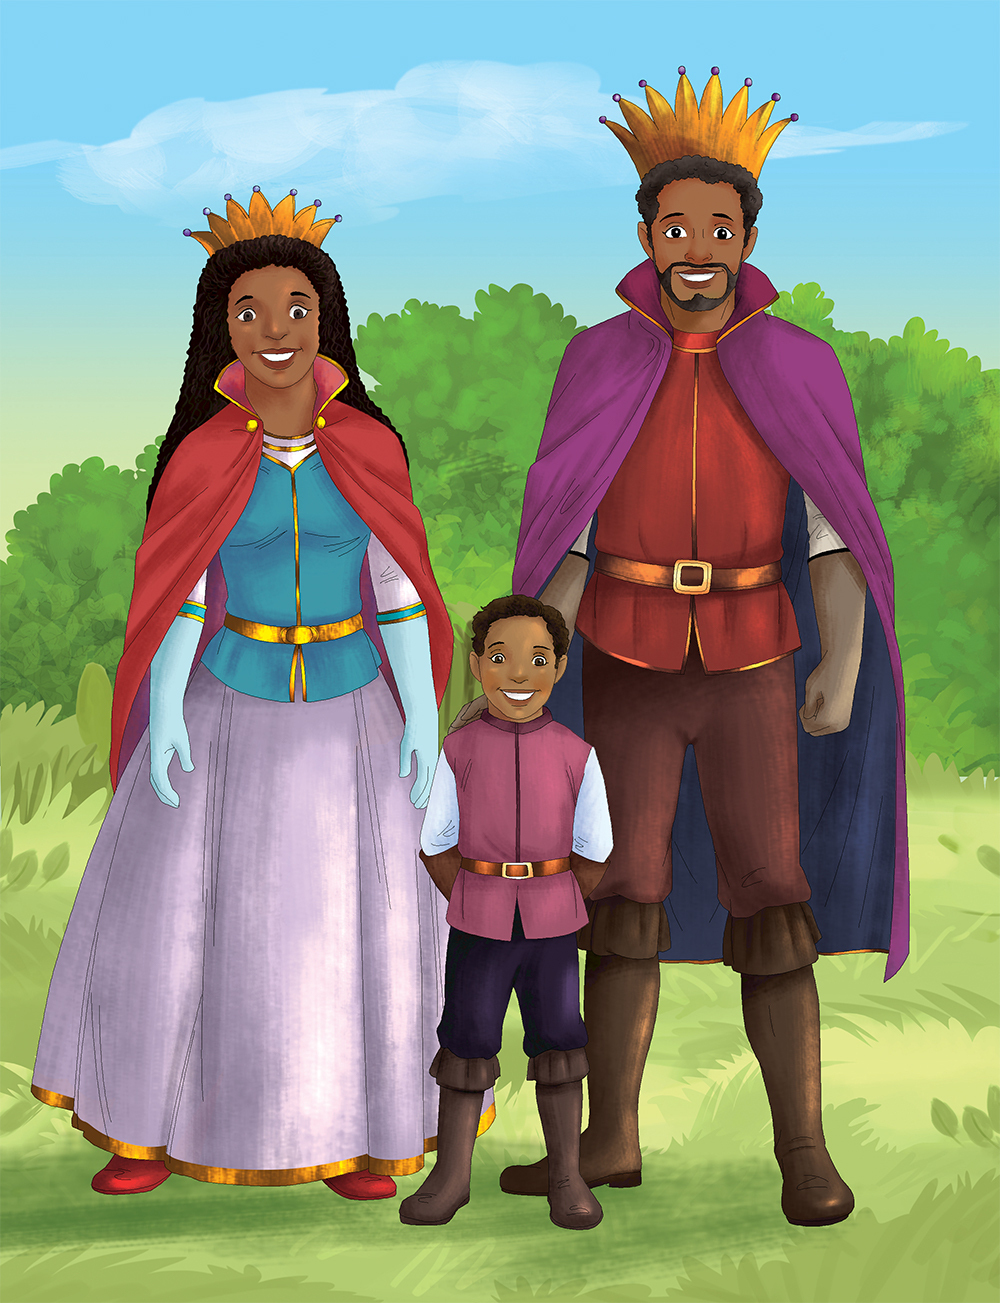 prince stands in a clearing with his queen mother and king father